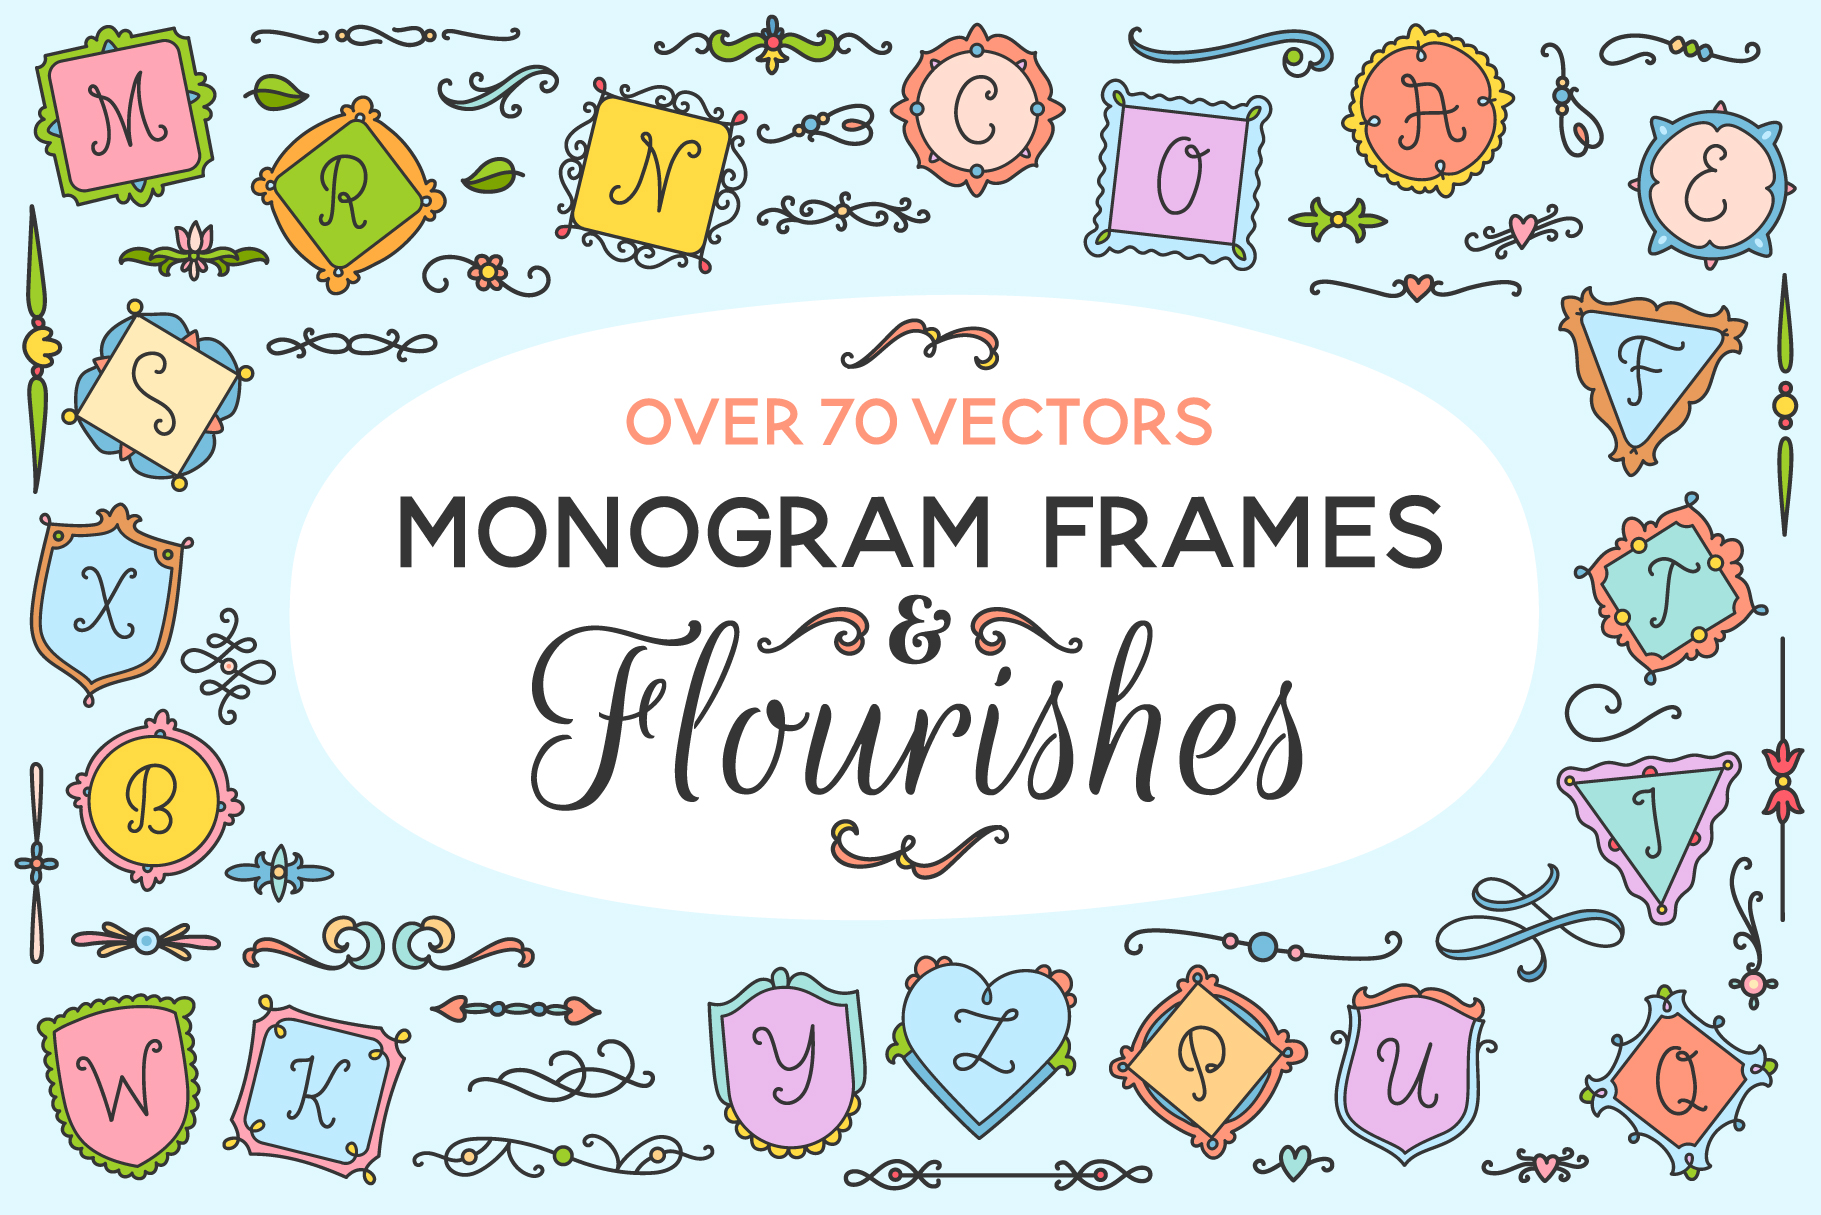 Monogram Frames & Flourishes  example image 1